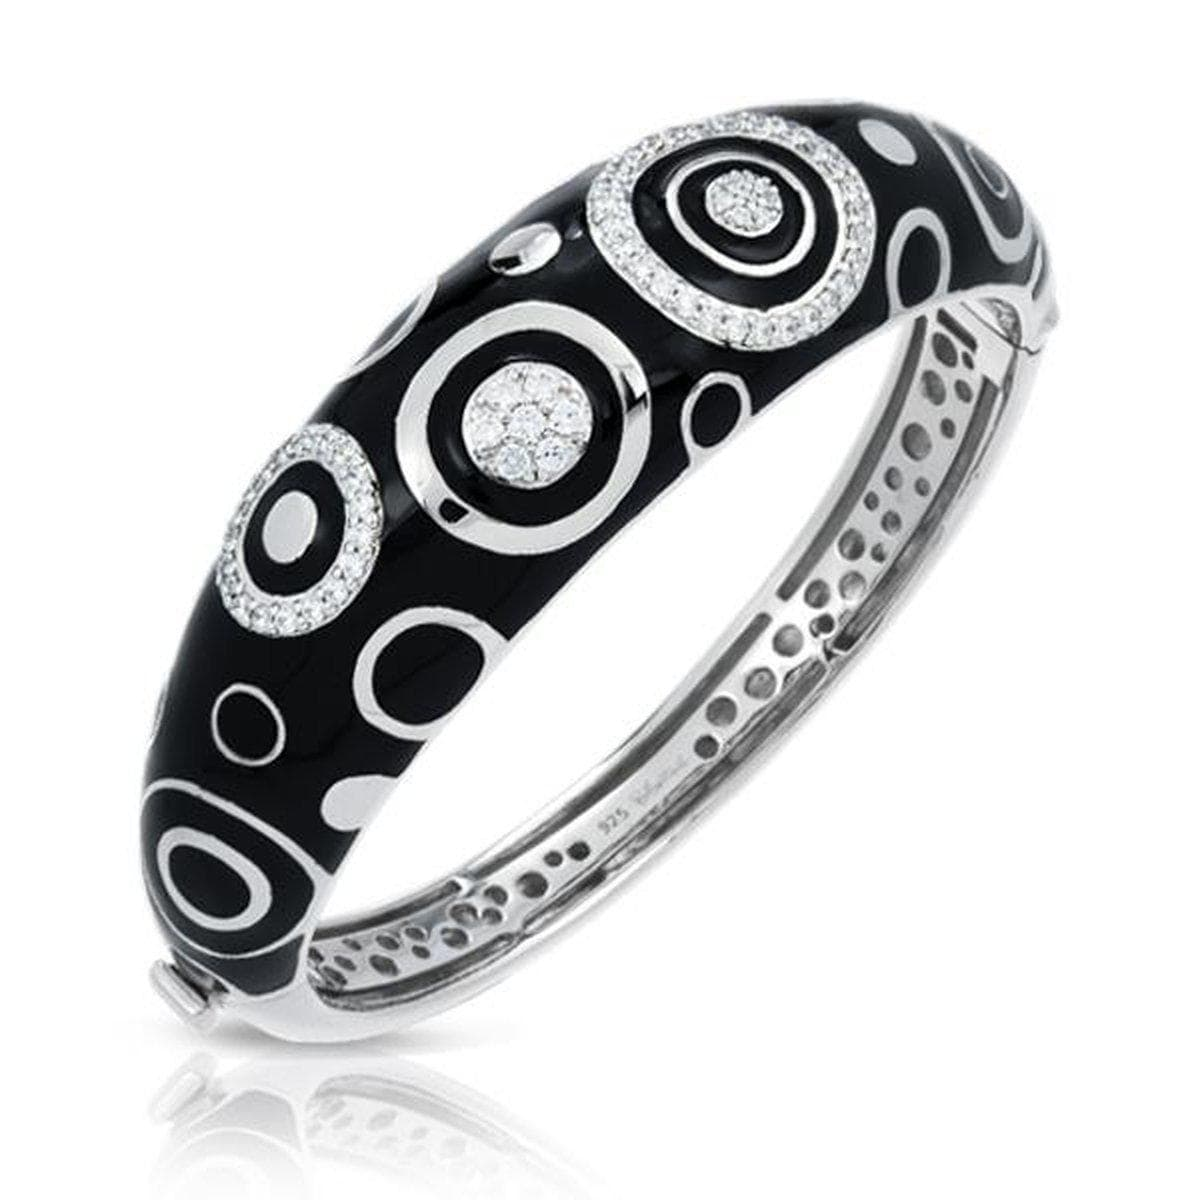 Galaxy Black Bangle-Belle Etoile-Renee Taylor Gallery